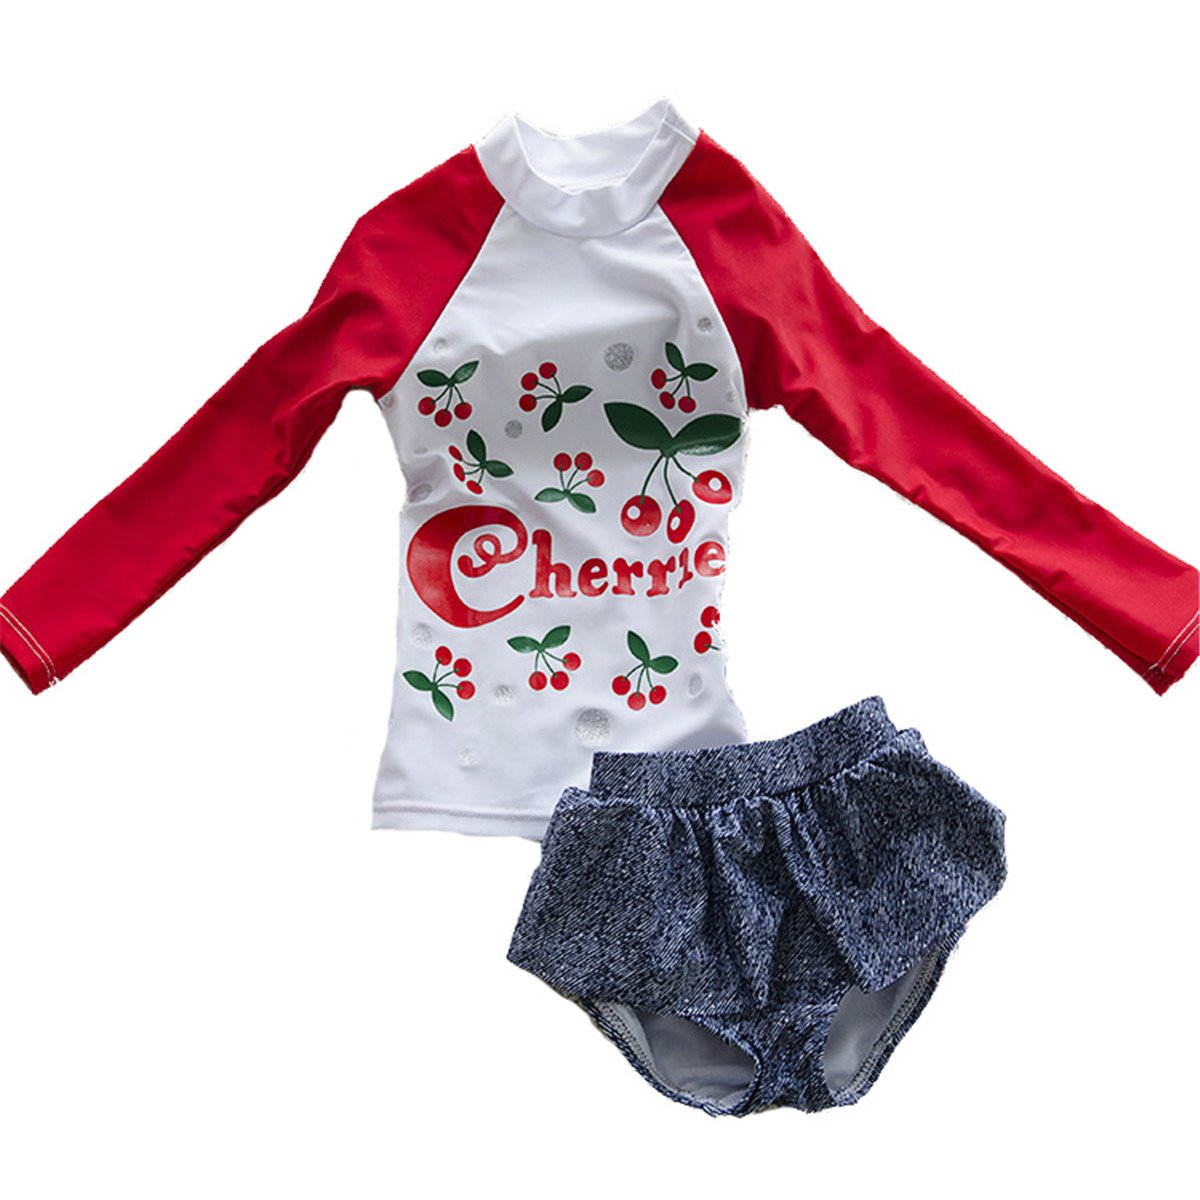 Baby Girls Kids Toddler Long Sleeve Cherry Print Swimsuit Rash Guard UPF 50 swimboygi033